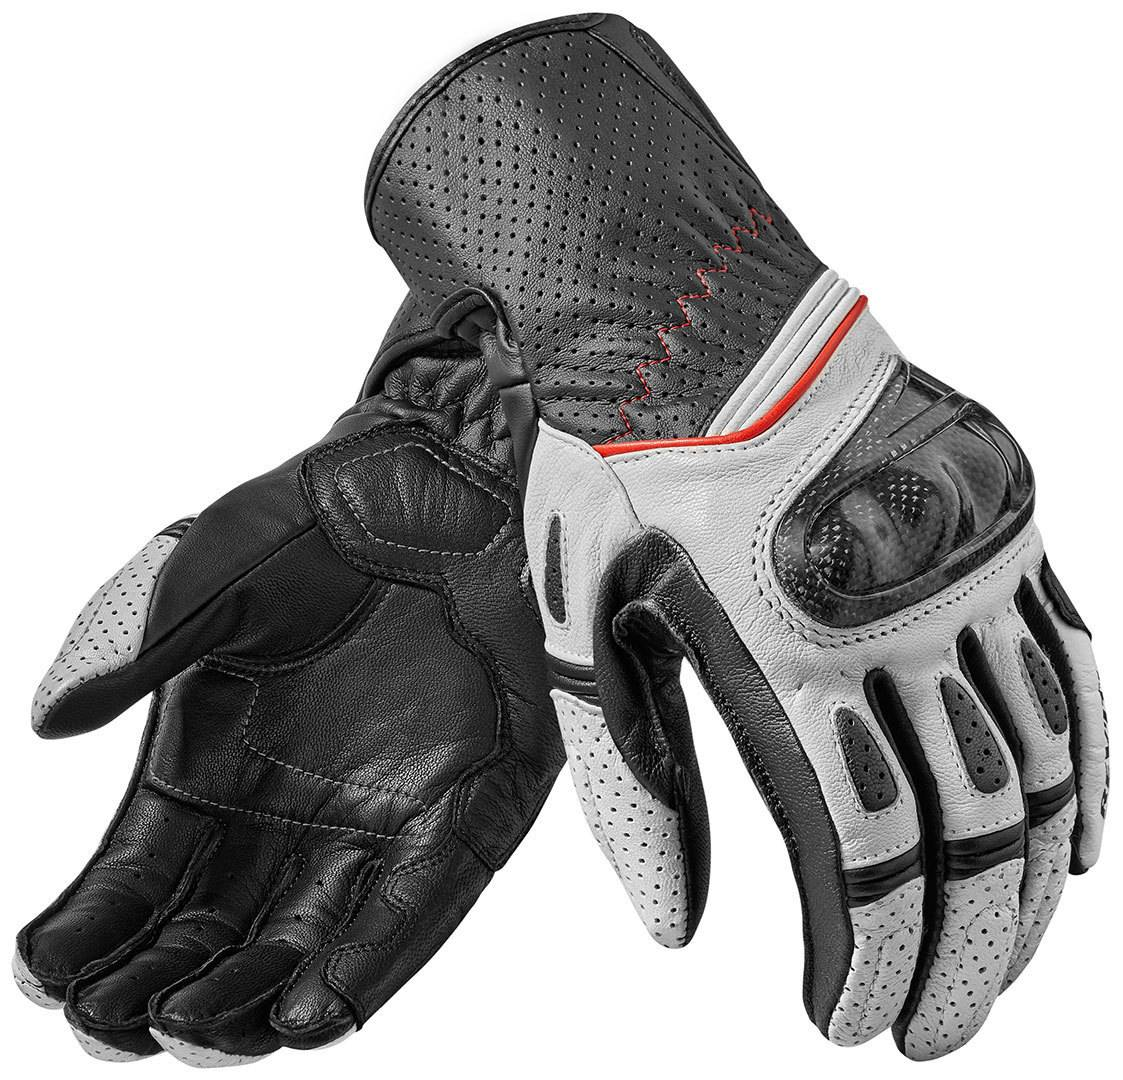 Revit Chevron 2 Guantes Blanco/Negro 2XL